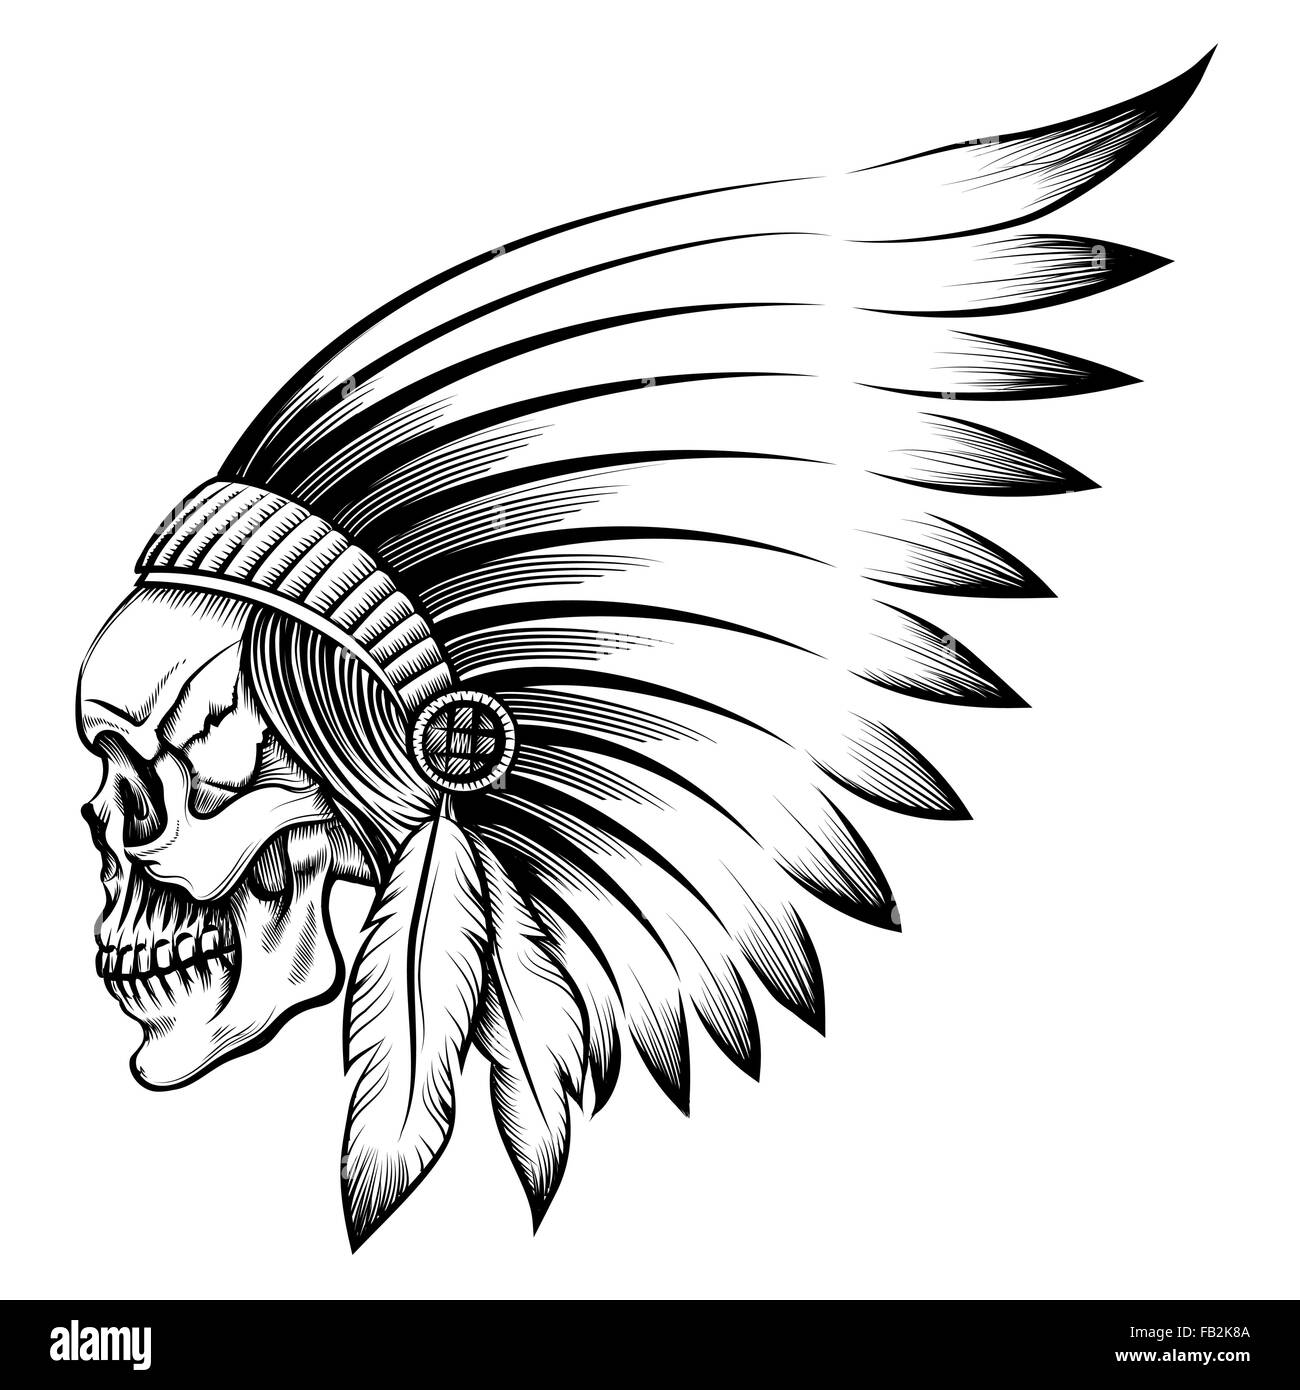 Indian chief skull in engraving style - Stock Image